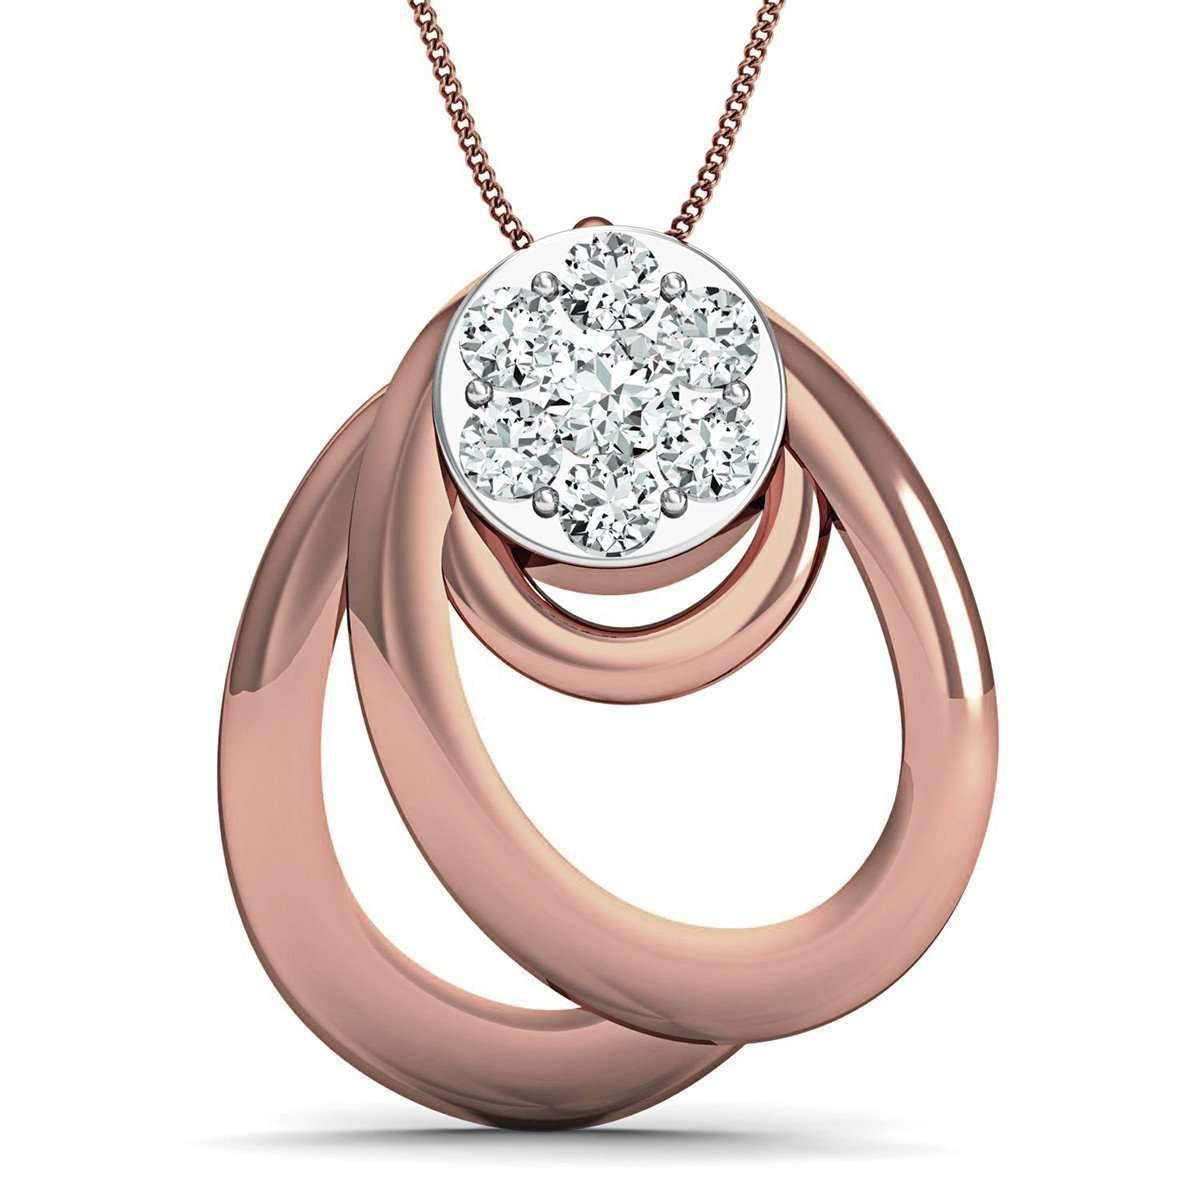 Diamoire Jewels Diamoire 10kt Rose Gold Diamond Pendant Inspired by Nature snlTs4Kj